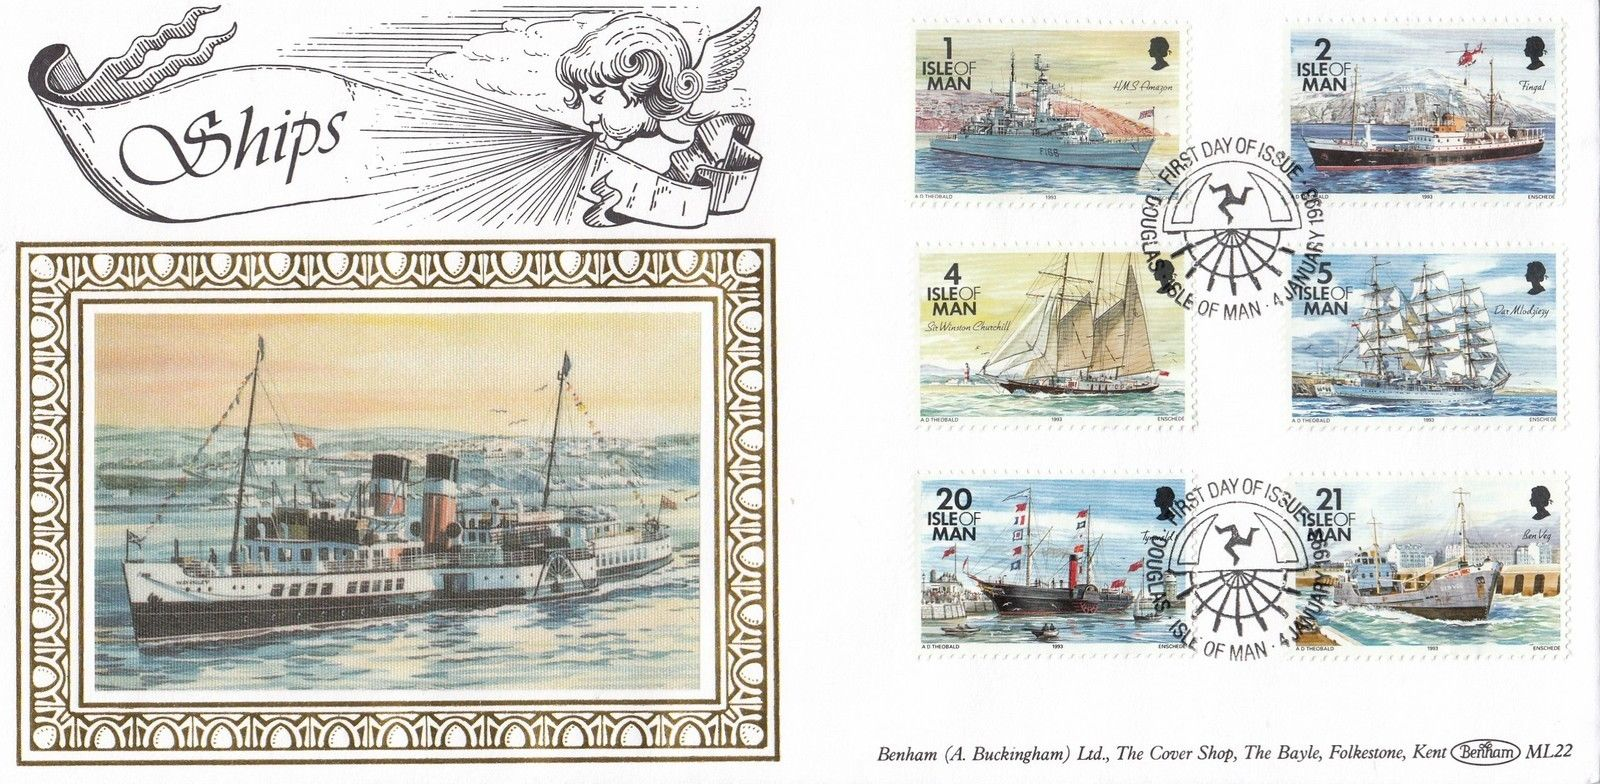 First day cover of the low values - 1p, 2p, 4p, 5p, 20p and 21p - in the 1993 Historic Ships definitive series issued by the Isle of Man on January 4, 1993 (Scott #531-534 and #543-544). Blenham cachet. Image from eBay [NMIC: 2018]